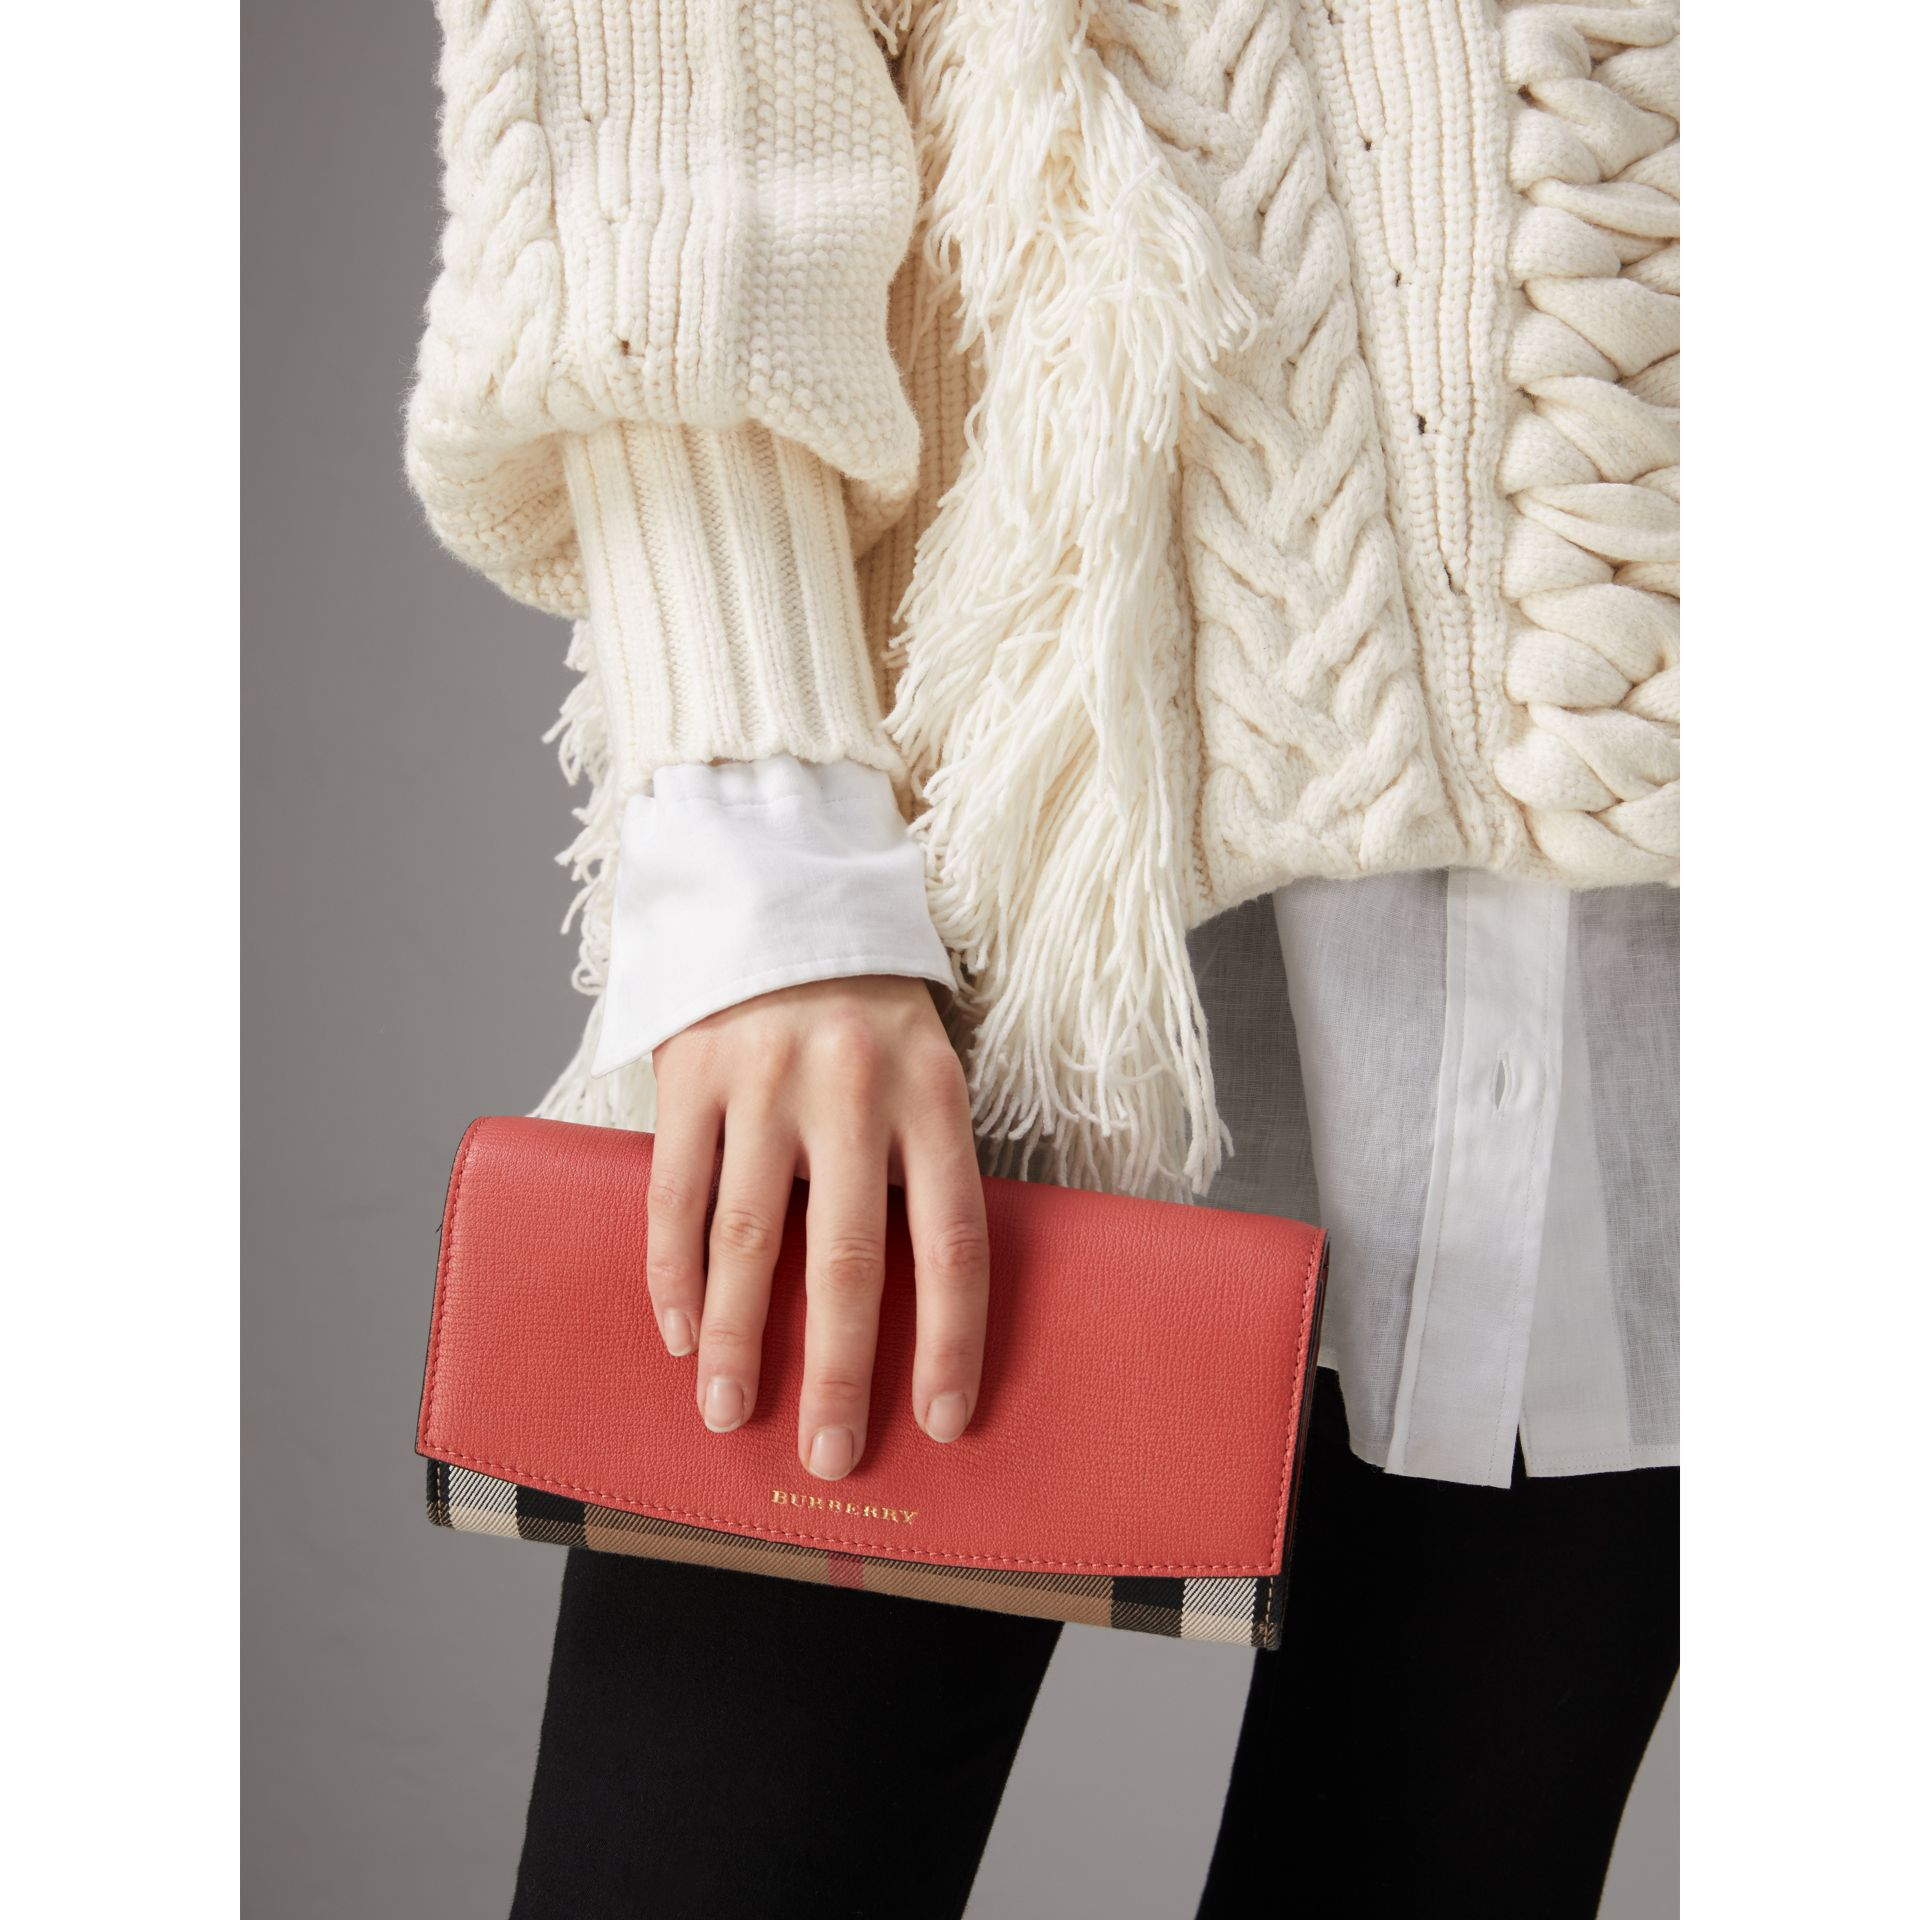 House Check and Leather Wallet with Chain in Cinnamon Red - Women | Burberry United States - gallery image 3